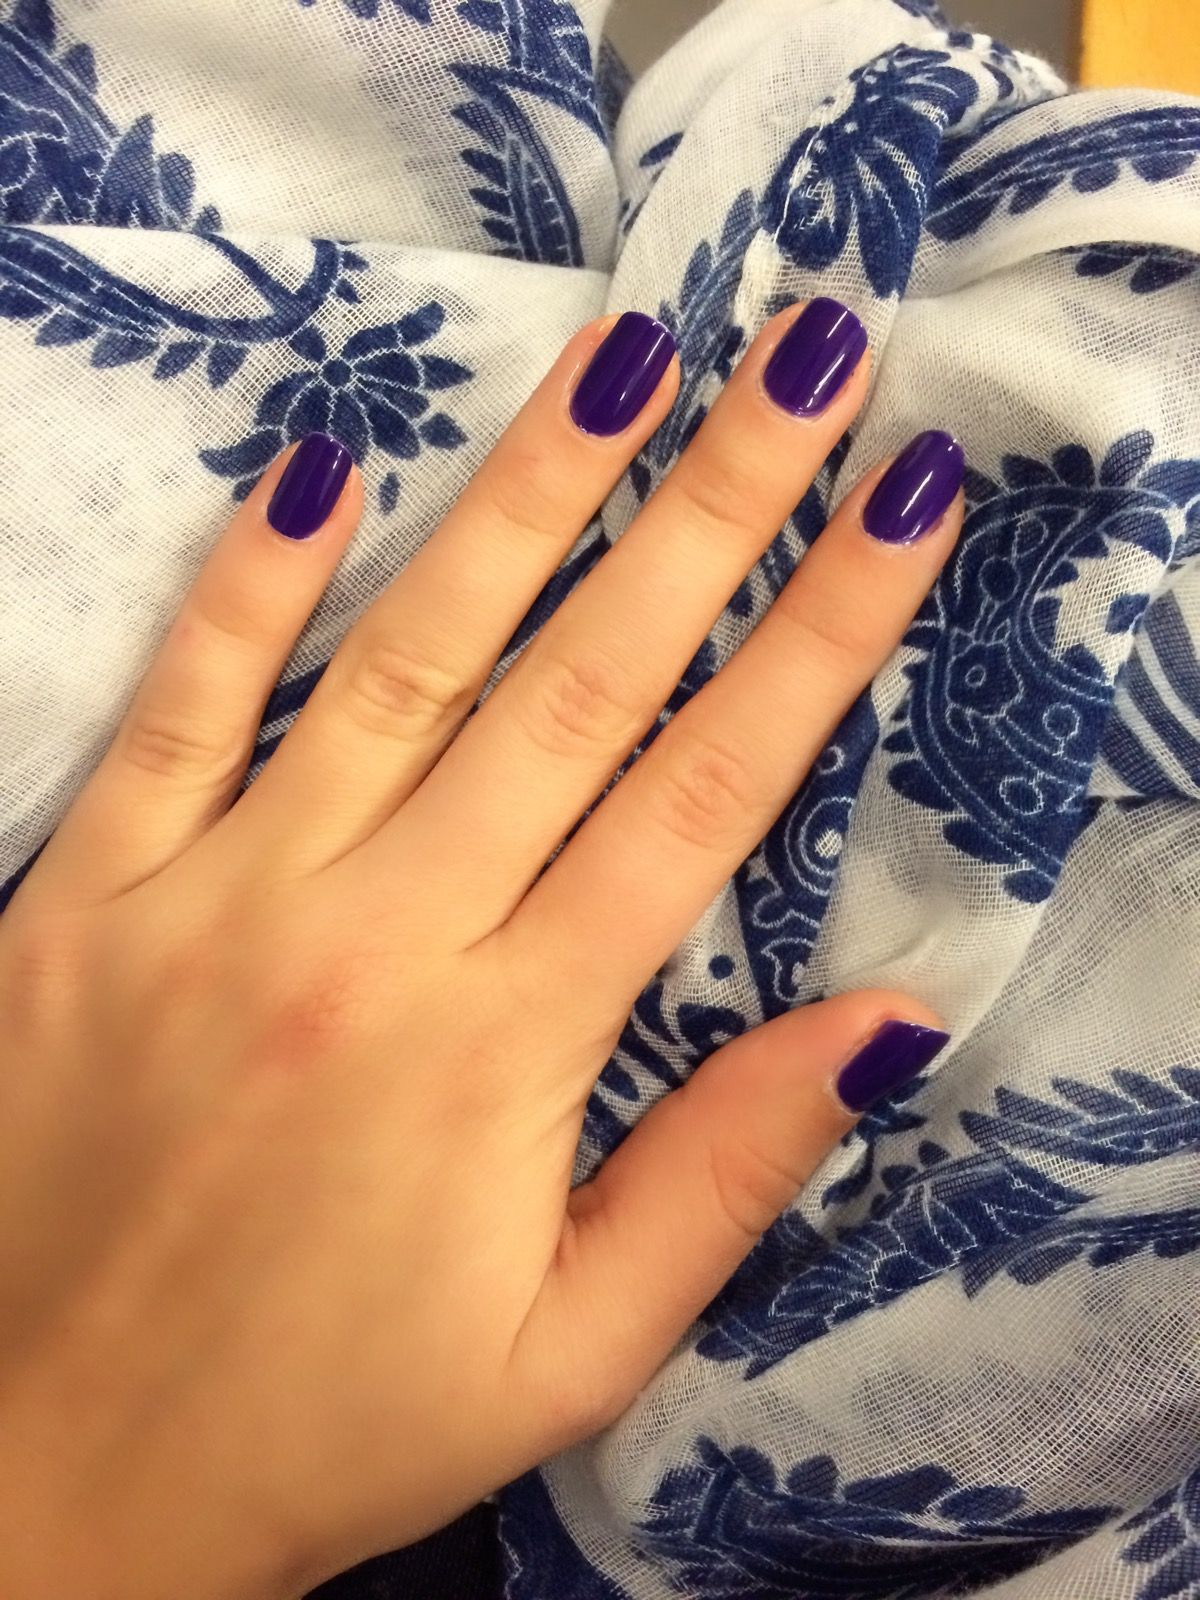 Wonderful purple nails perfect for autumn 💅🍃🍂